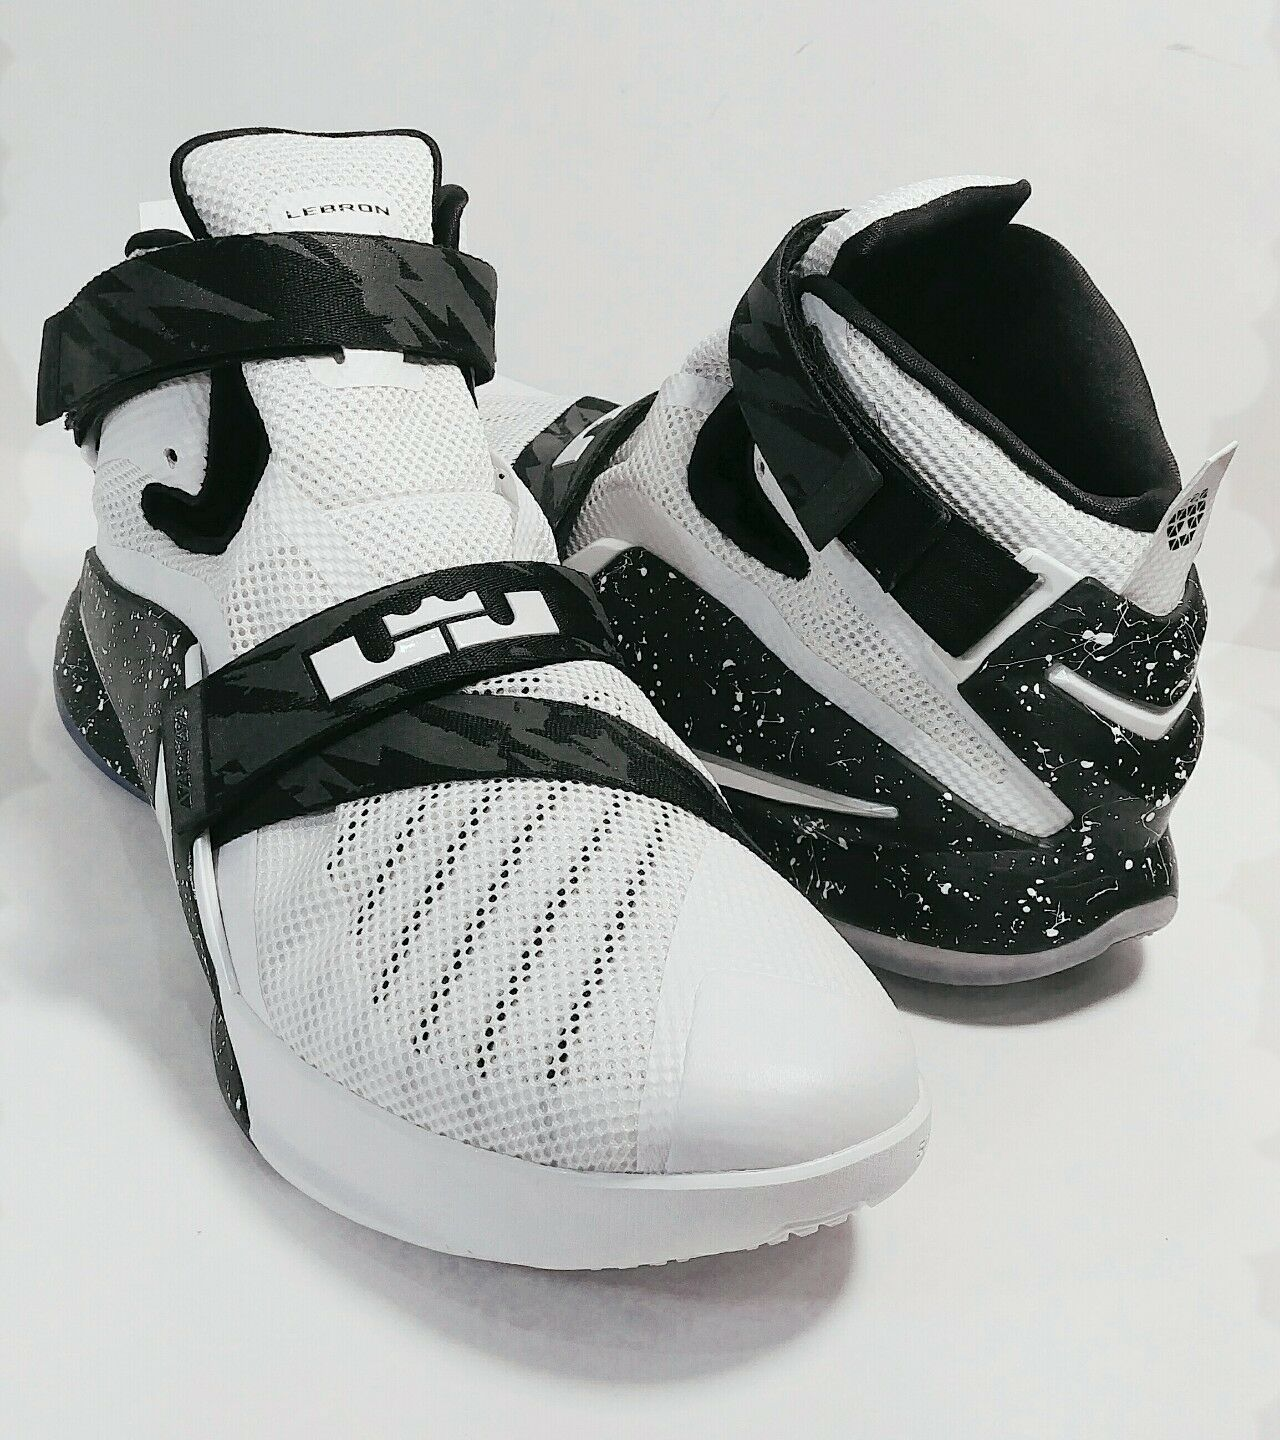 Nike Lebron Soldier IX PRM EP White/White-Black Price reduction Comfortable Special limited time